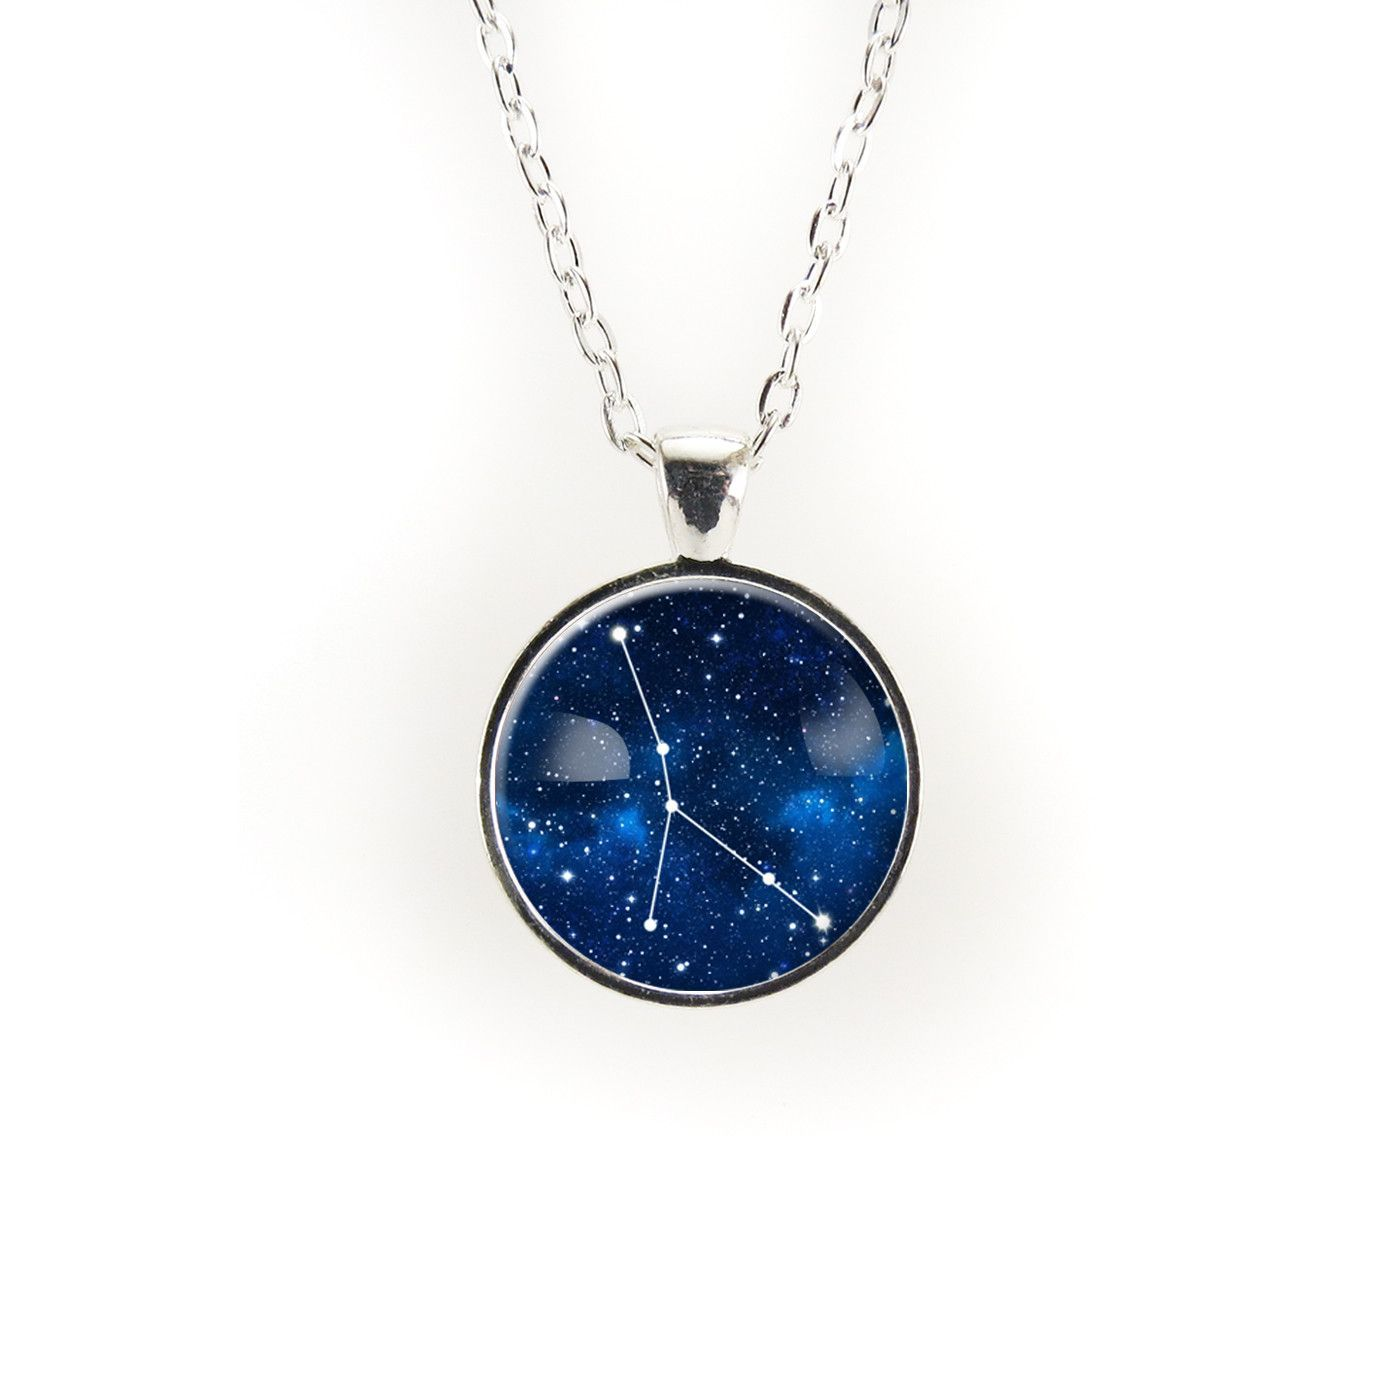 Cancer constellation necklace astrology zodiac pendant numerology cancer constellation necklace astrology zodiac pendant aloadofball Choice Image